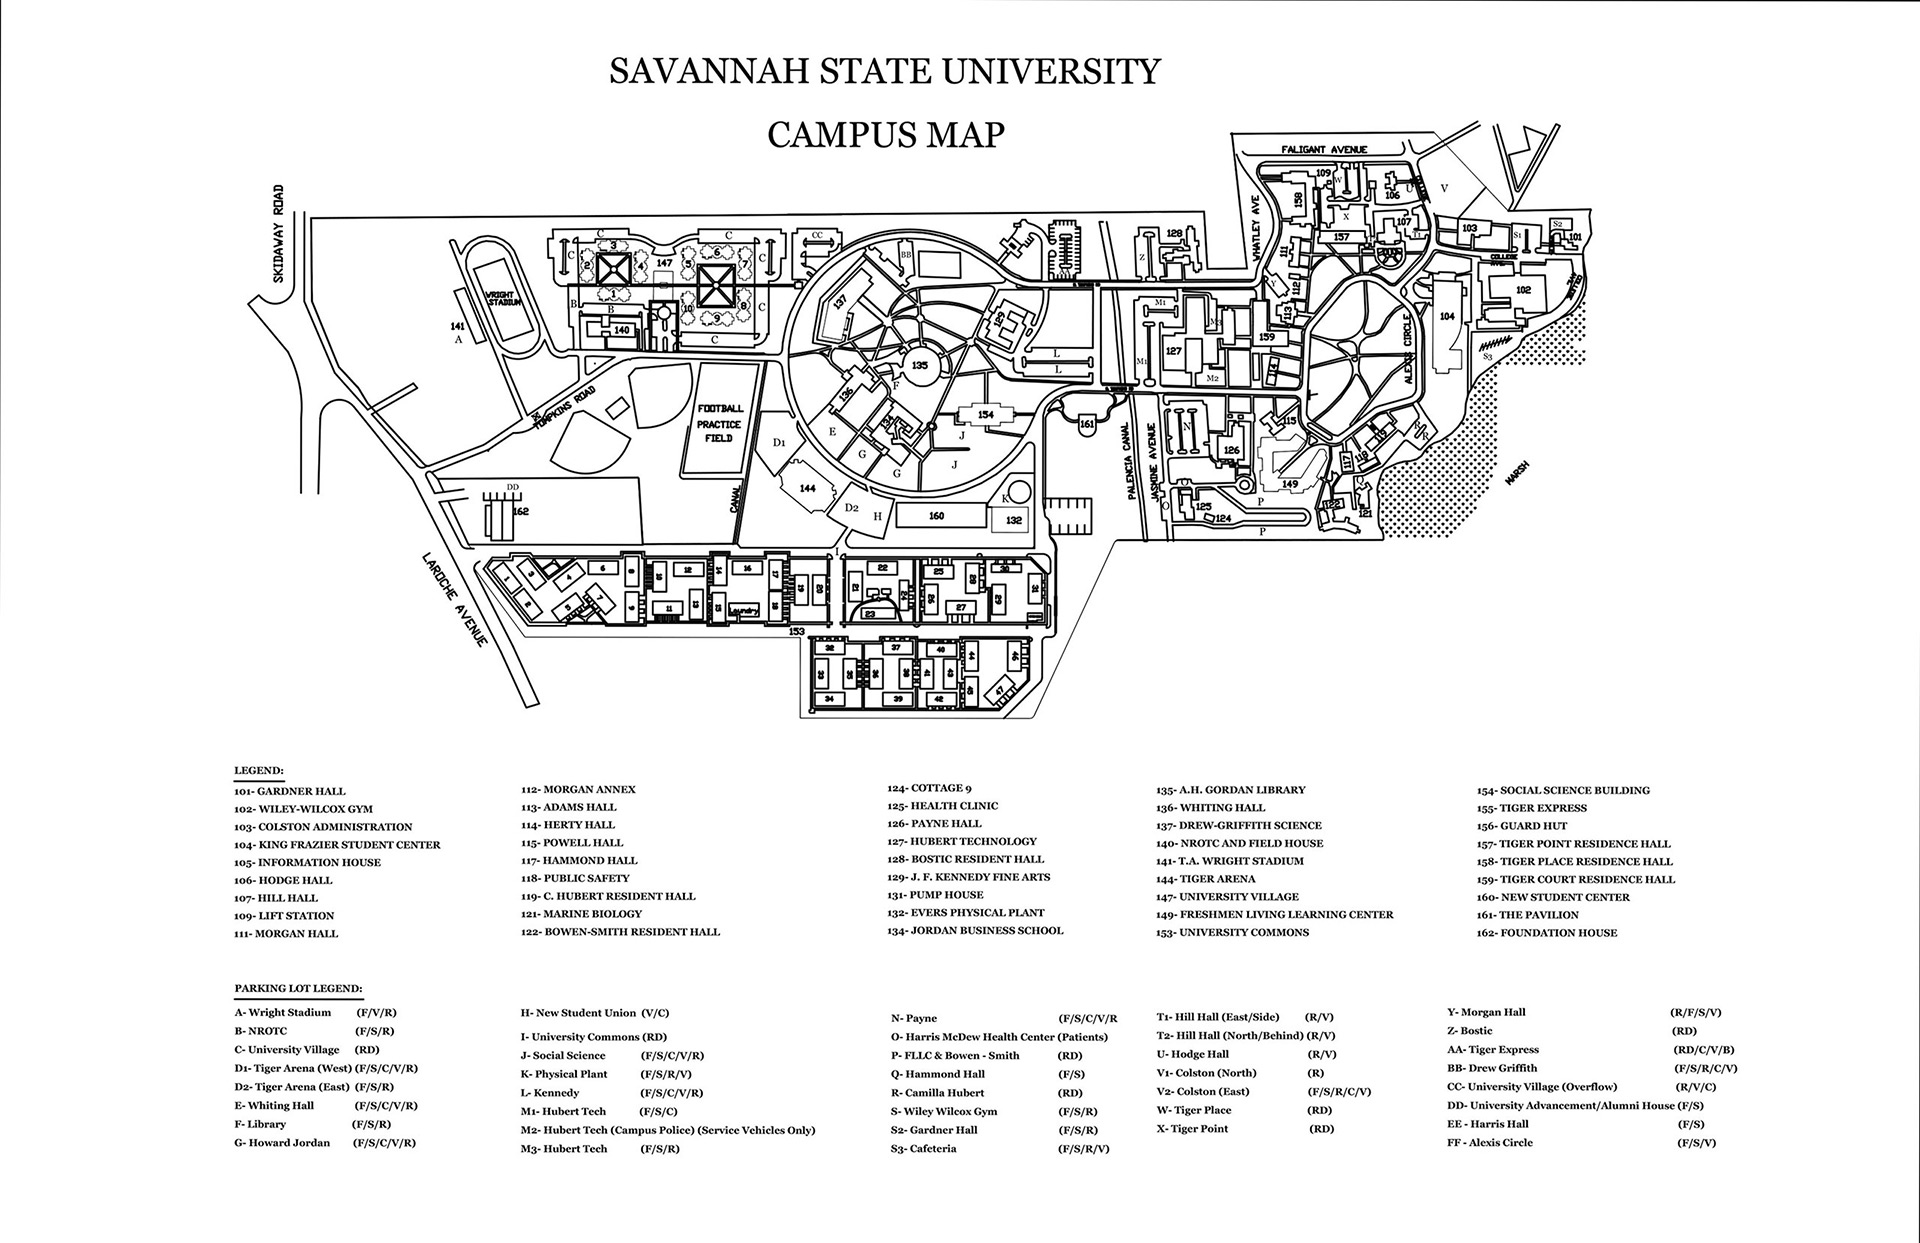 Savannah State University Map on kennedy death, kennedy north carolina, kennedy west wing, kennedy georgetown home, kennedy wife, kennedy american flag, kennedy presidential china, kennedy peace corps, kennedy political cartoon, kennedy compound, kennedy american university, kennedy assassination, kennedy impeachment, kennedy inauguration, kennedy curse, kennedy family, kennedy camp david, kennedy news anchor,